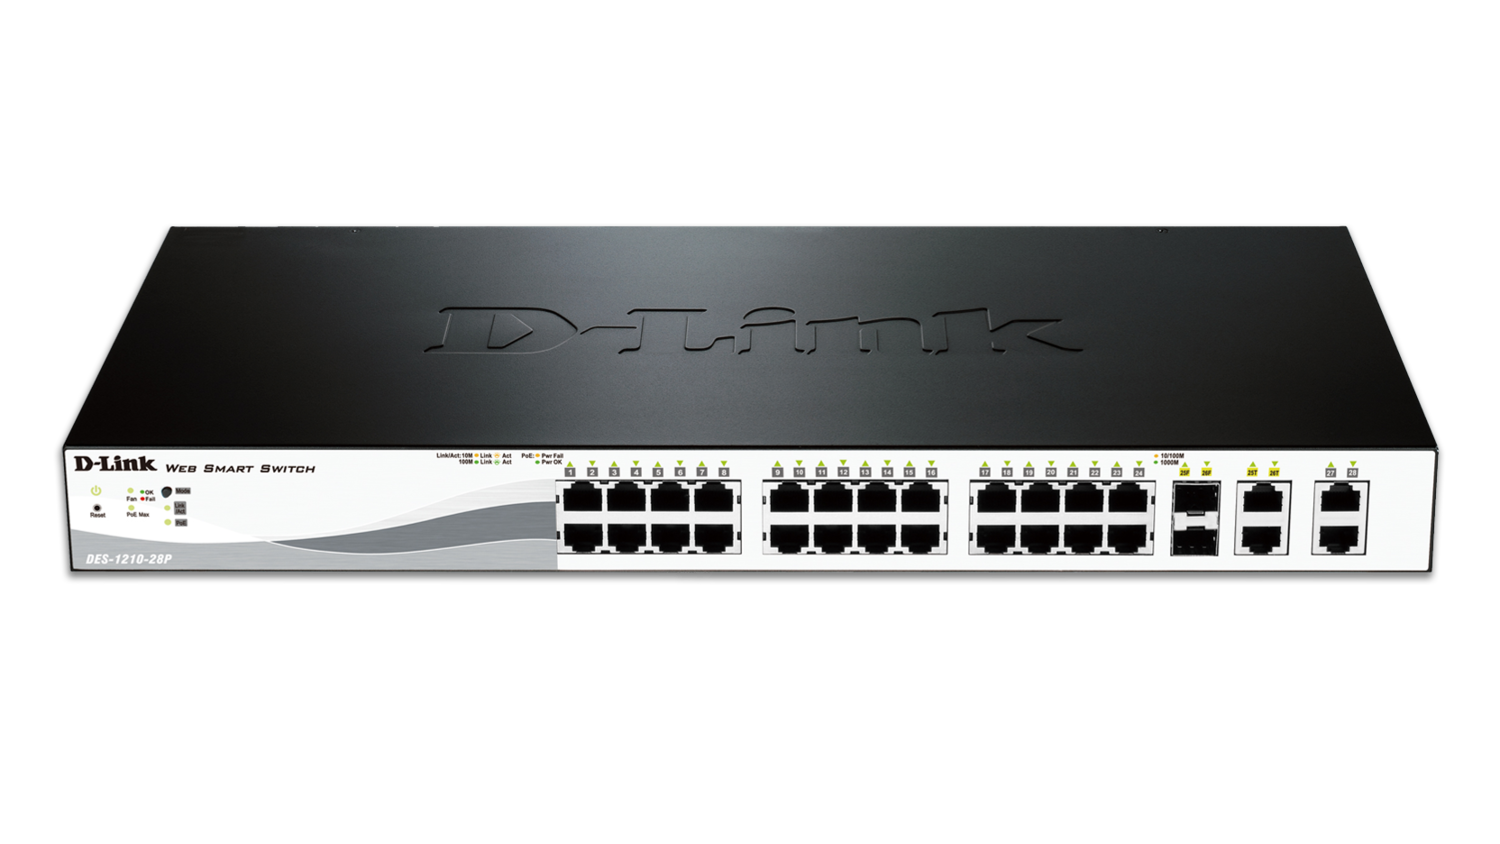 D-Link 24-Ports 10/100/1000Mbps PoE Switches, DES-1210-28P